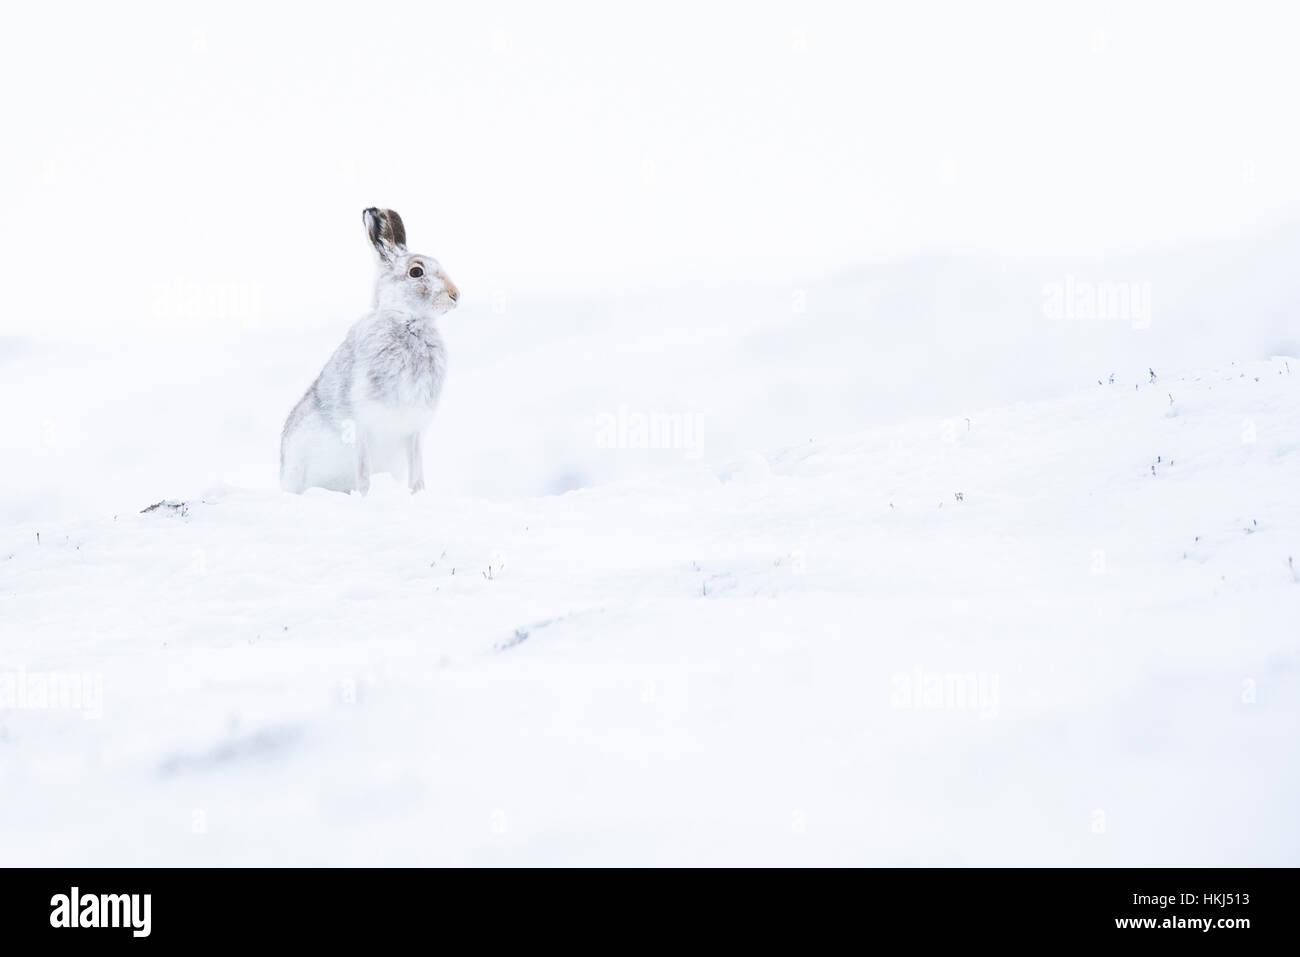 Mountain hare (Lepus timidus) in the snow, winter coat, Cairngroms National Park, Scottish Highlands, Scotland, - Stock Image